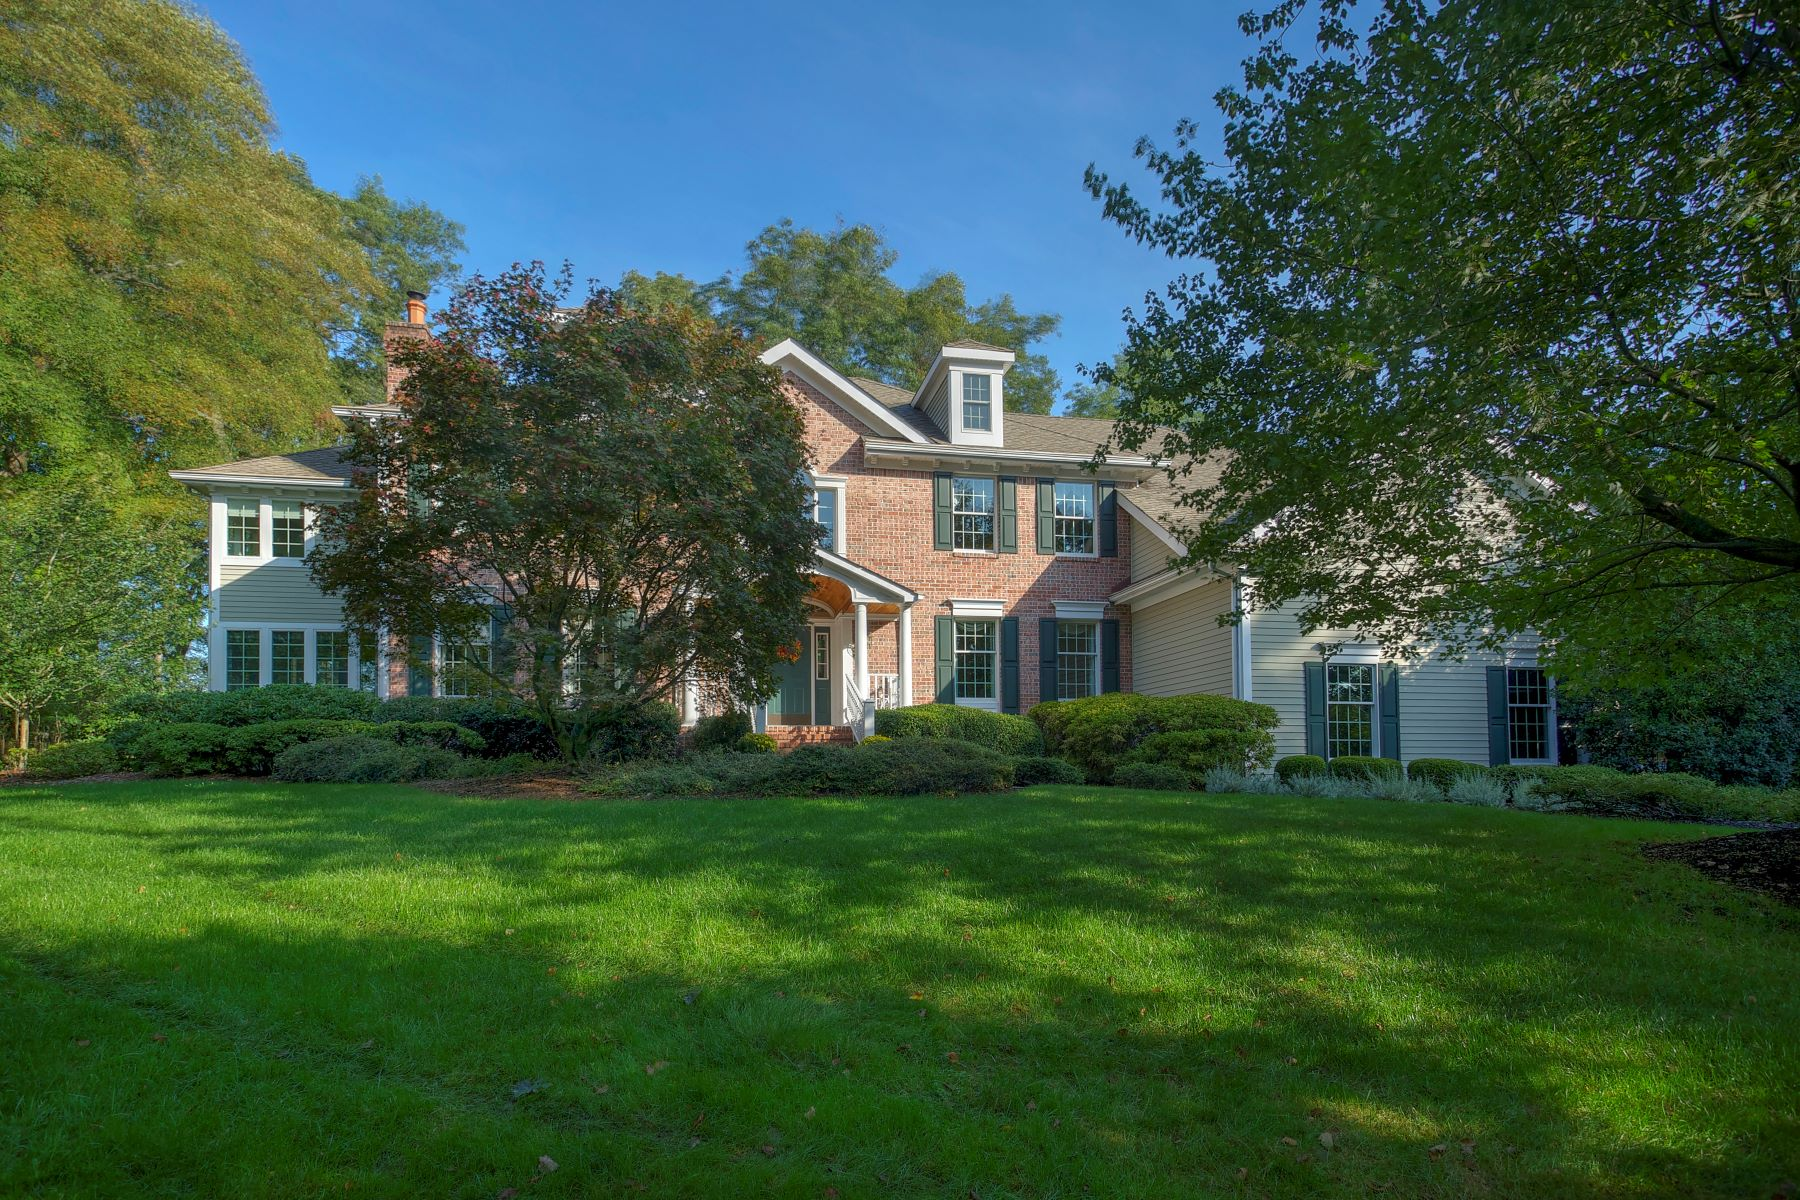 Maison unifamiliale pour l Vente à Exceptional Value in Premier Location 94 Emily Road Basking Ridge, New Jersey 07920 États-Unis